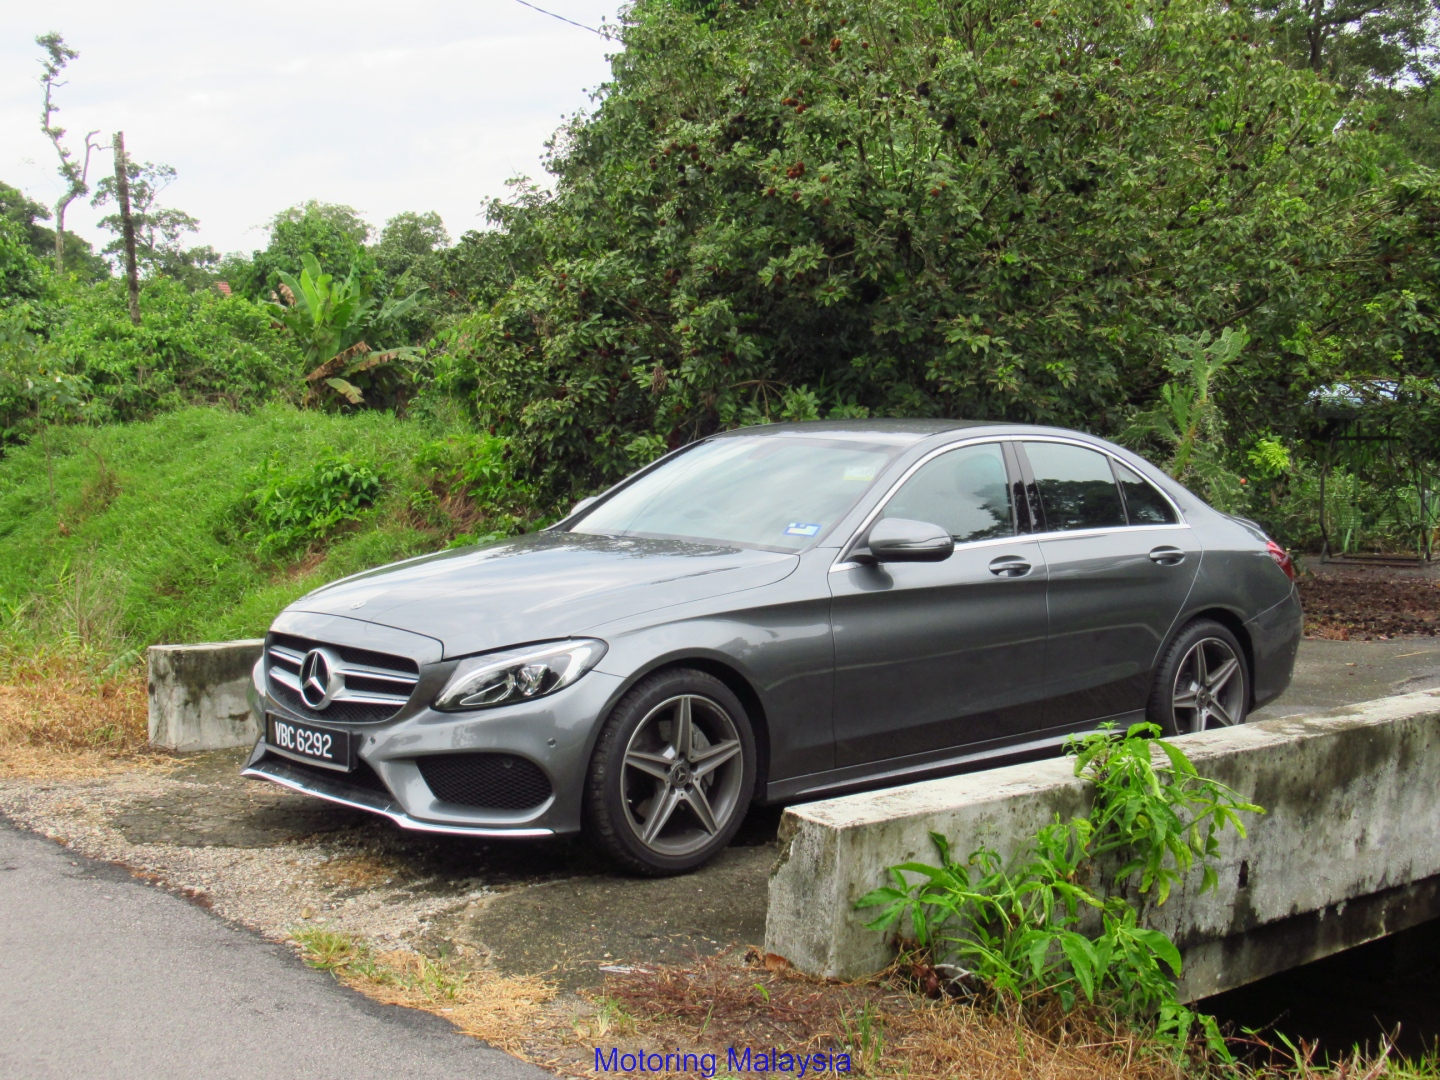 Motoring-Malaysia: Pictorial: The W205 Mercedes-Benz C-Class